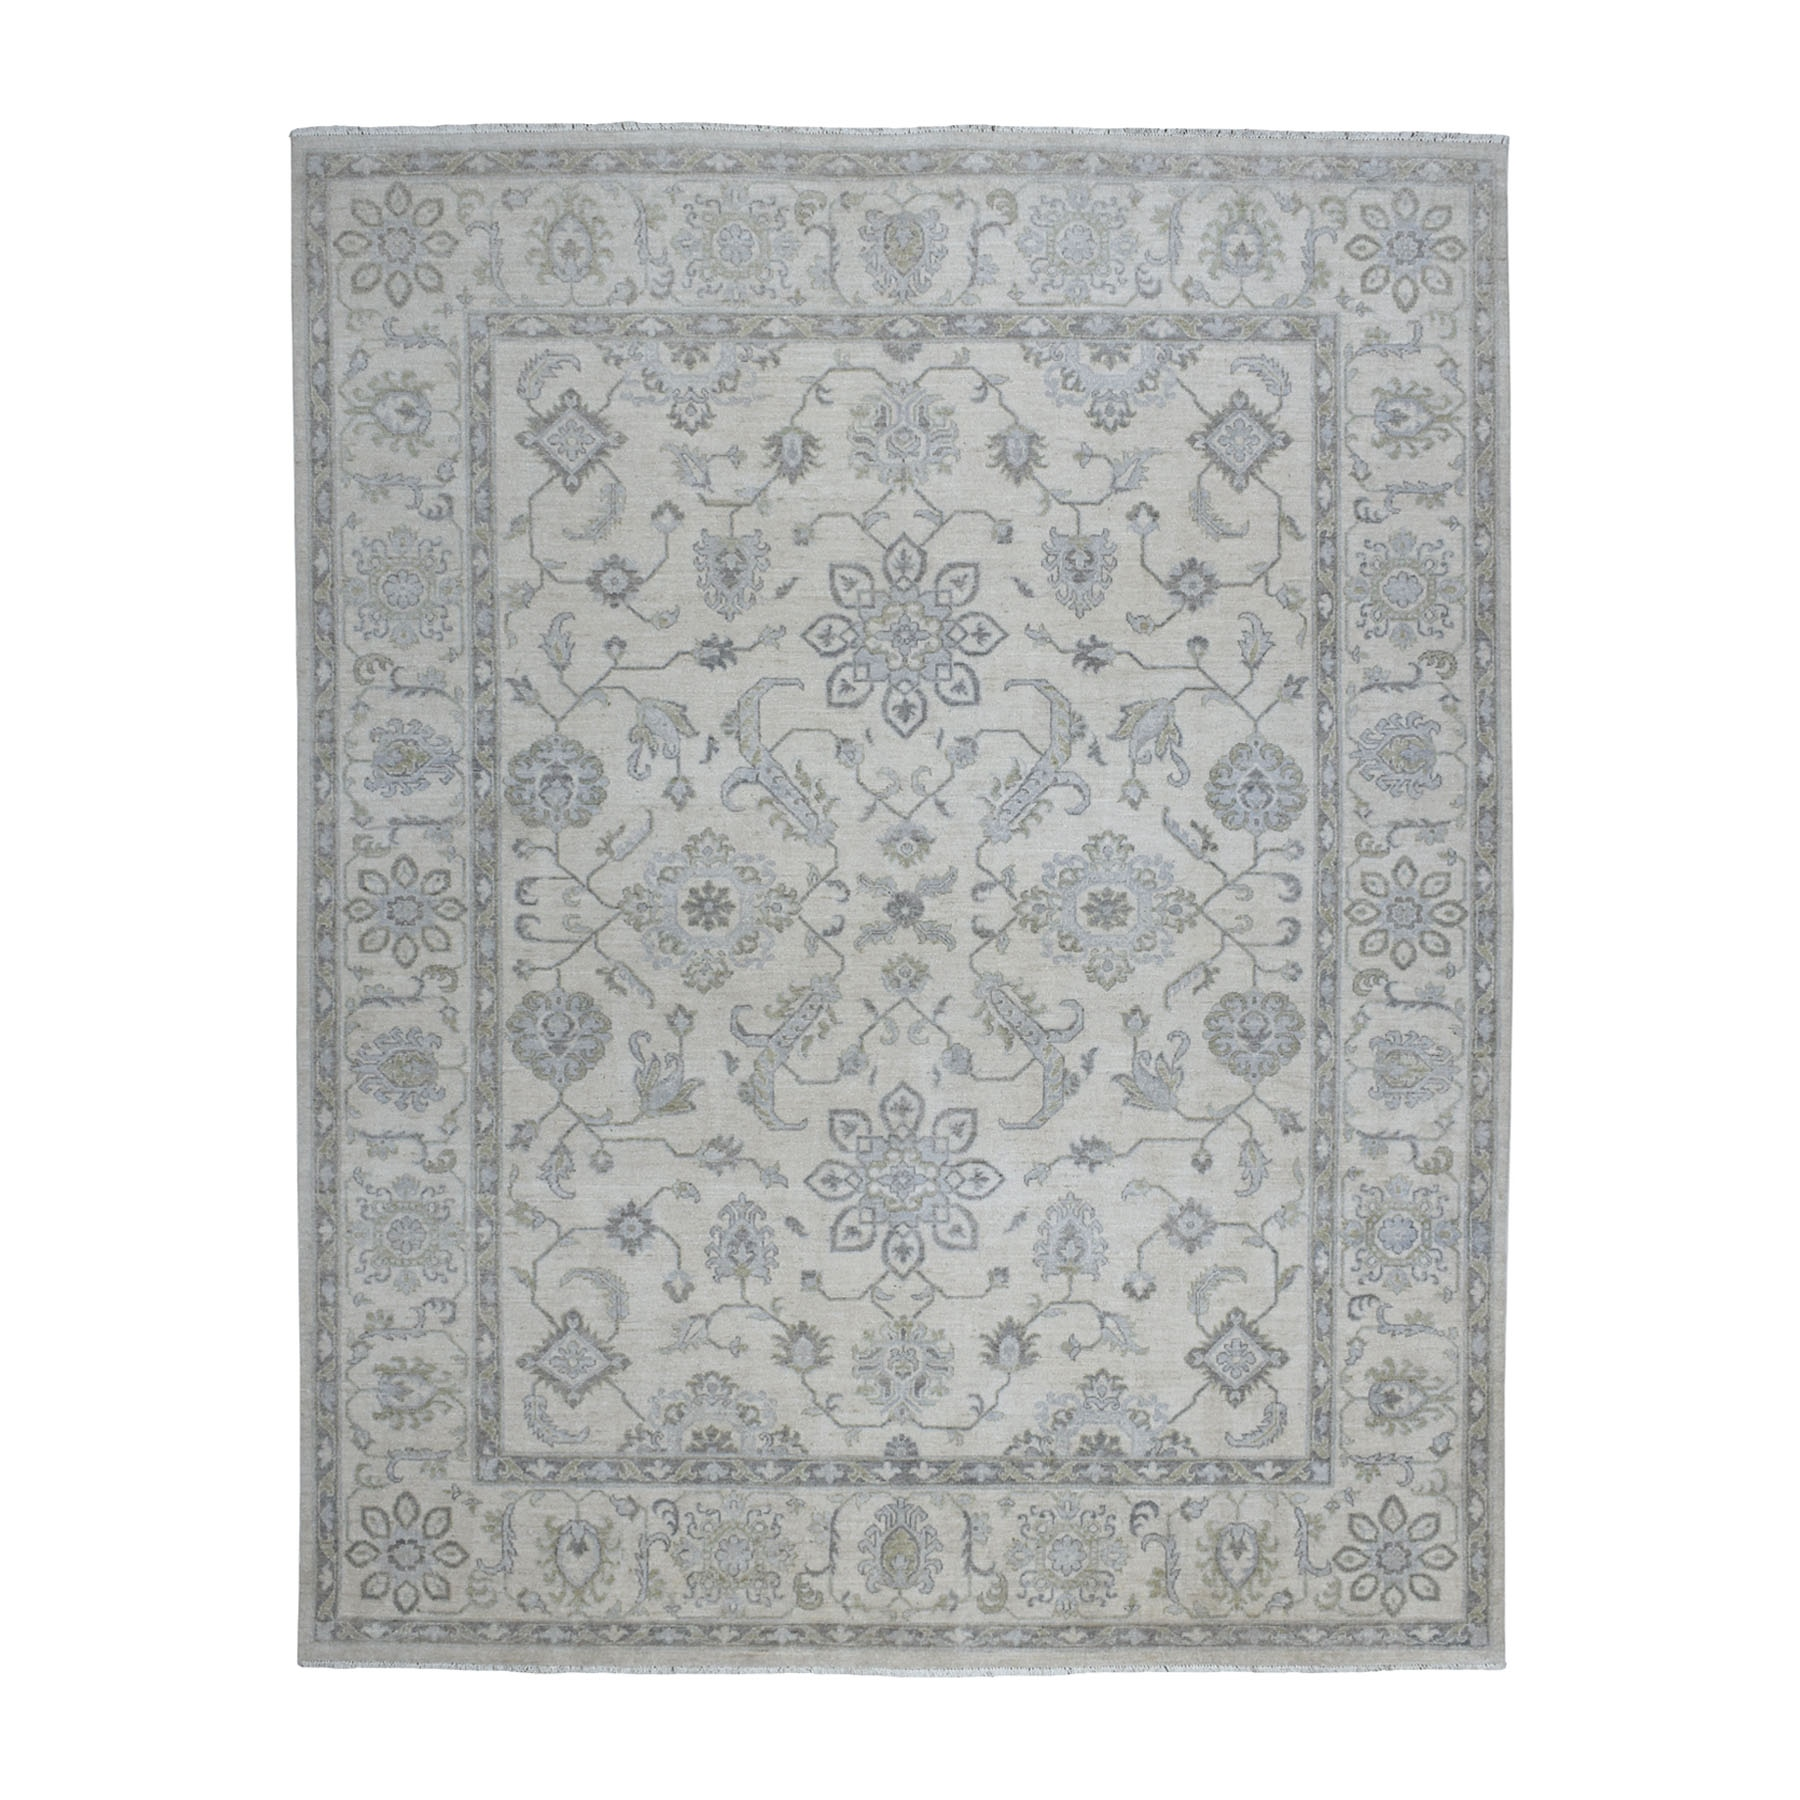 "7'10""x9'8"" White Wash Peshawar Pure Wool Hand Knotted Oriental Rug"